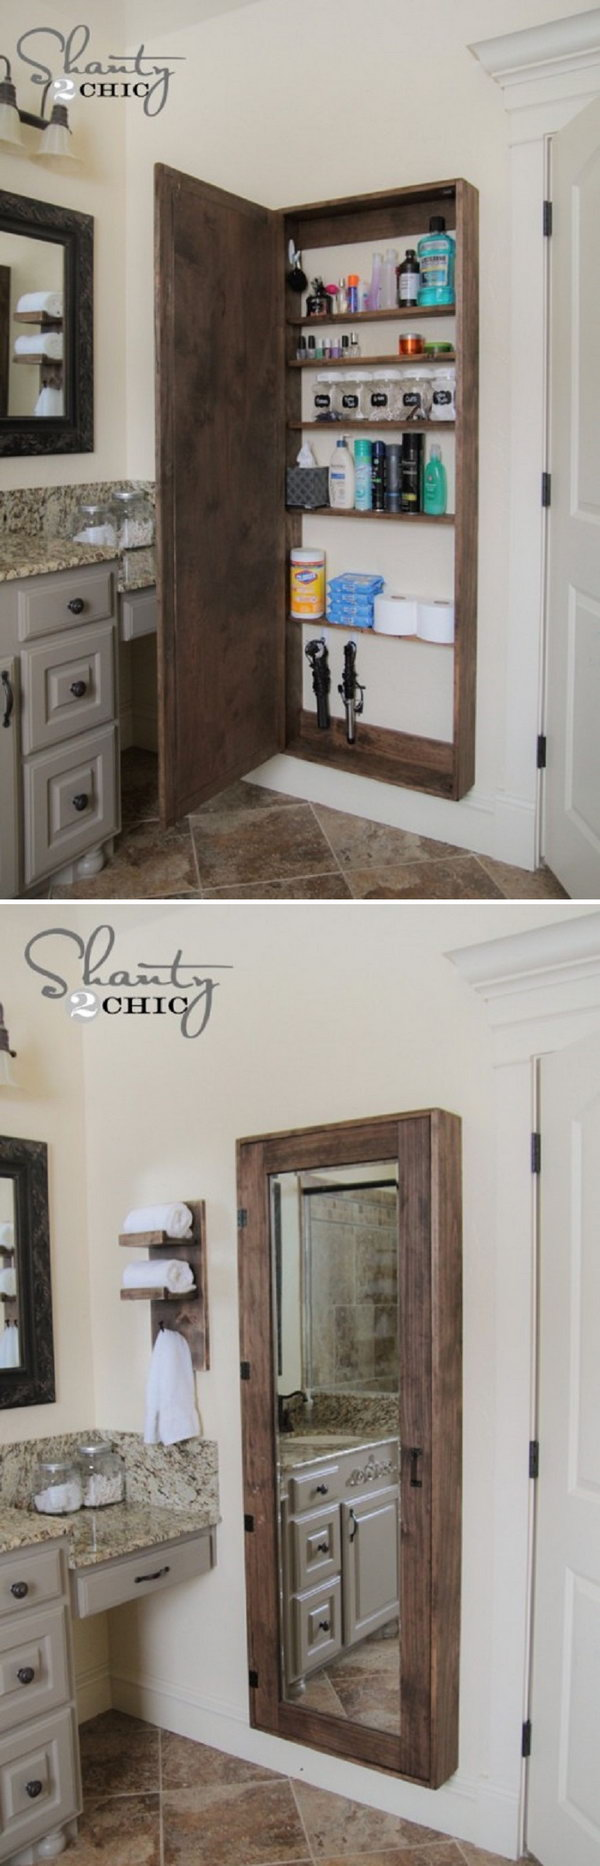 20 clever hidden storage ideas hative - Bathroom mirror with hidden storage ...